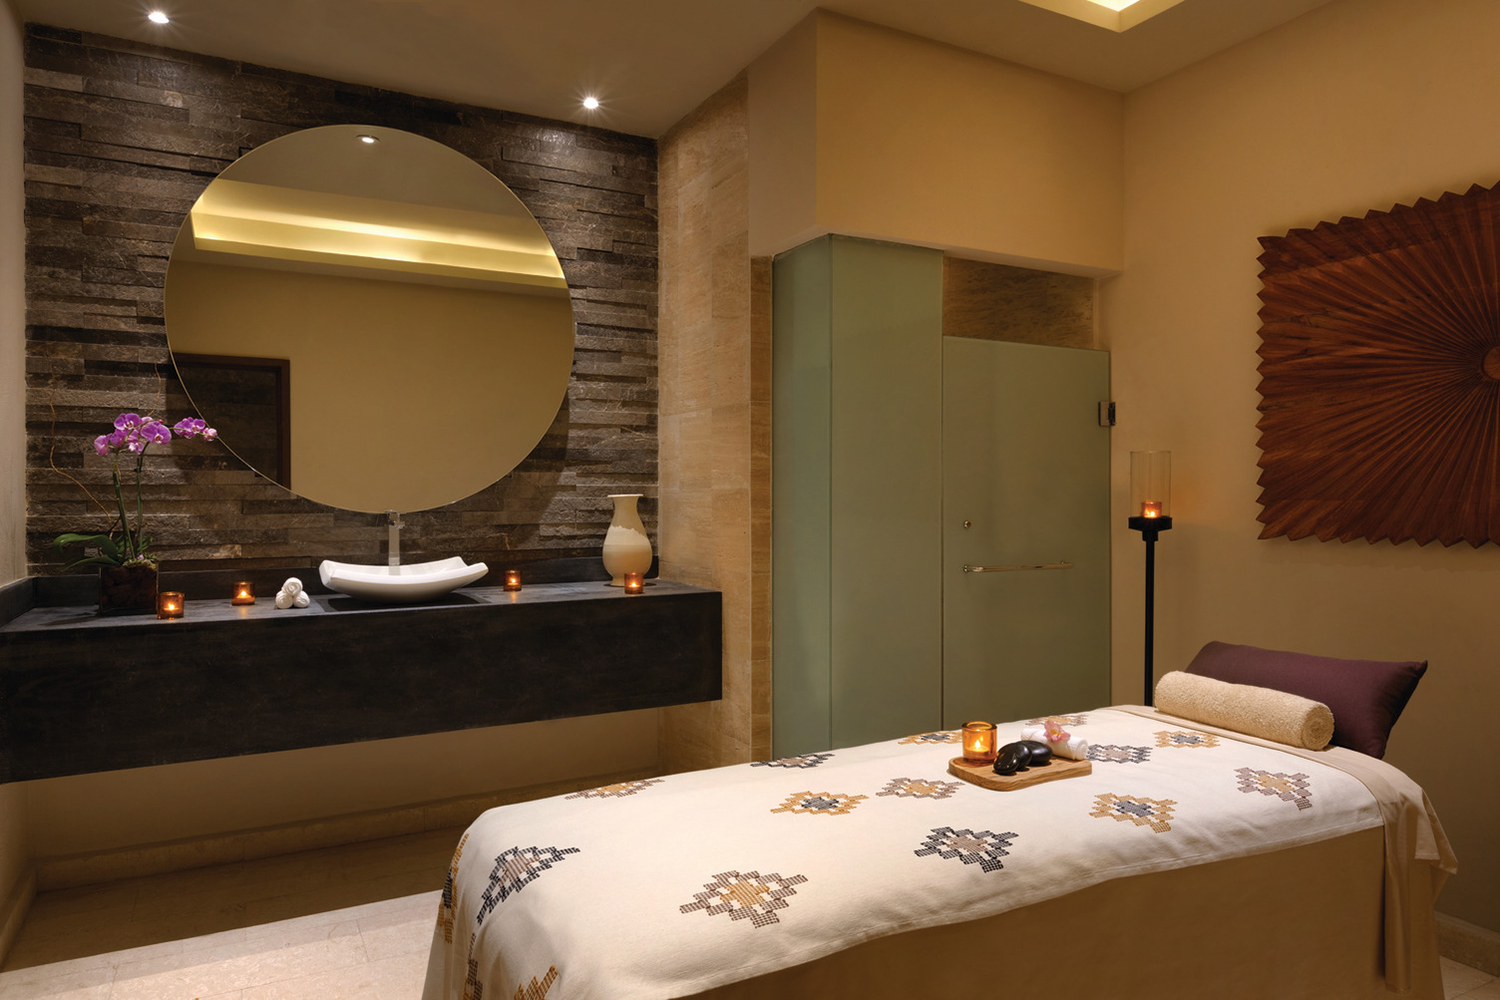 Zen Spa features a combination of exotic therapies, treatments, and philosophies from around the world.